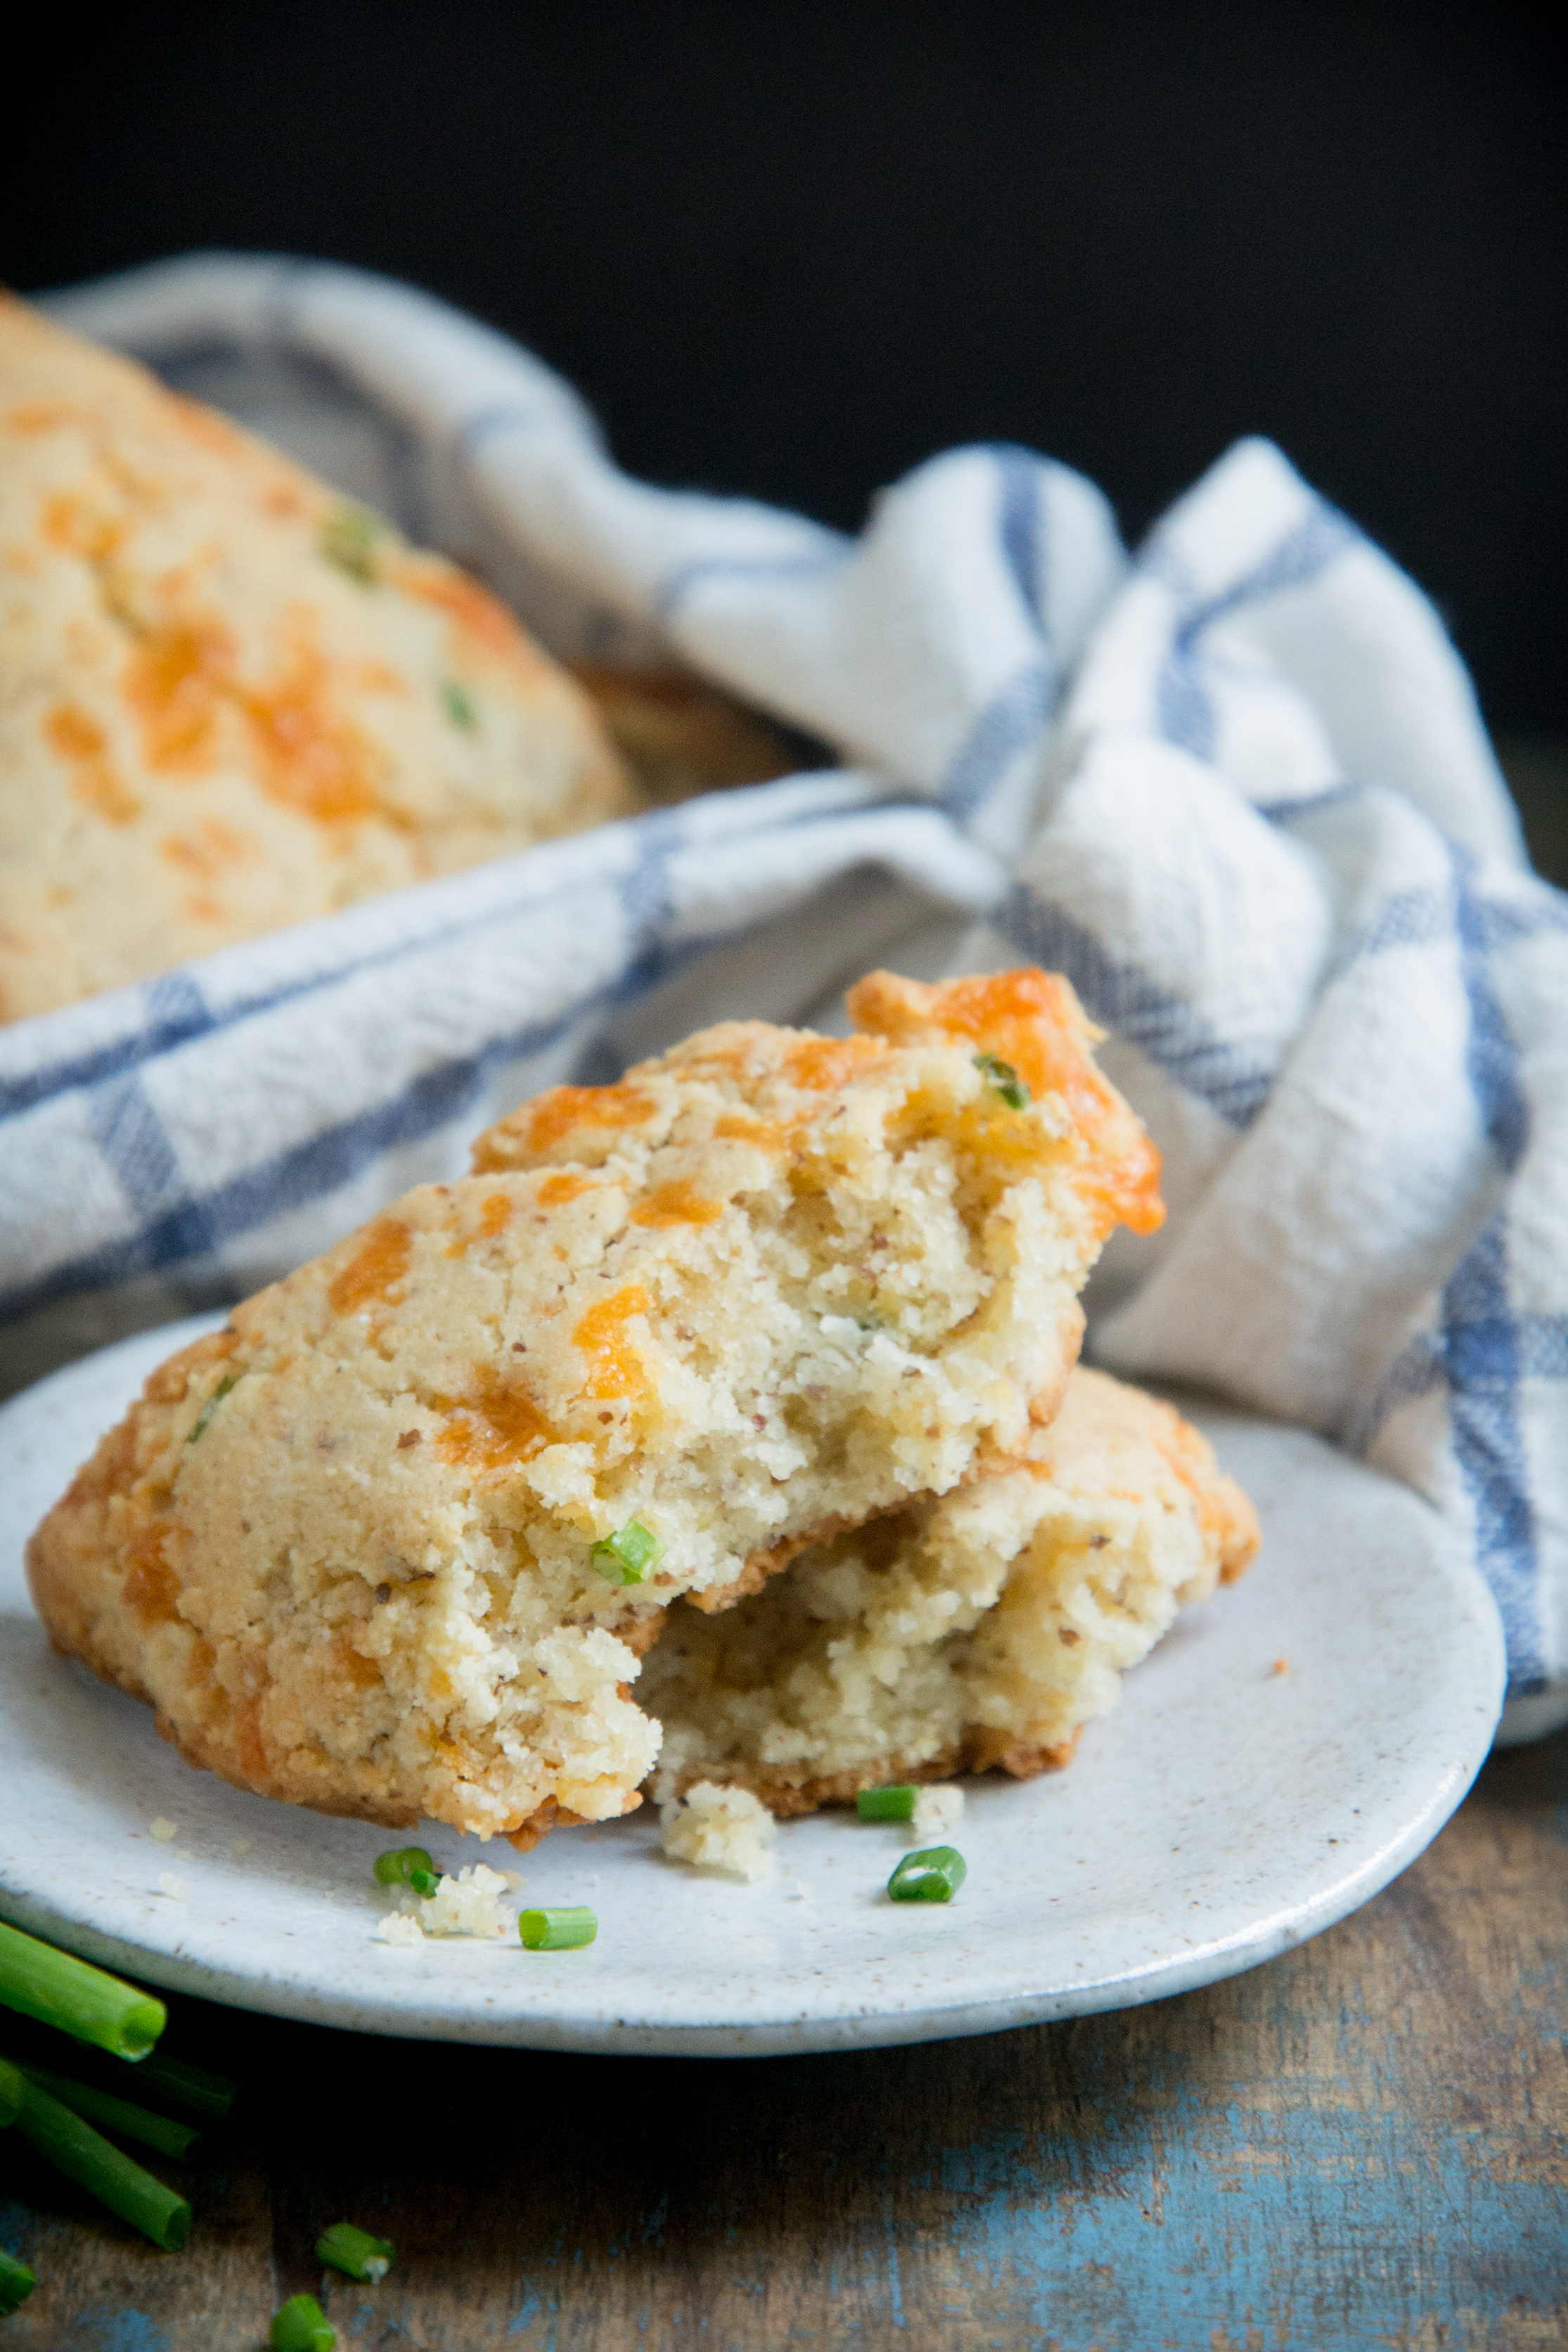 Low-Carb Cheddar Biscuits -one biscuit broken in half.